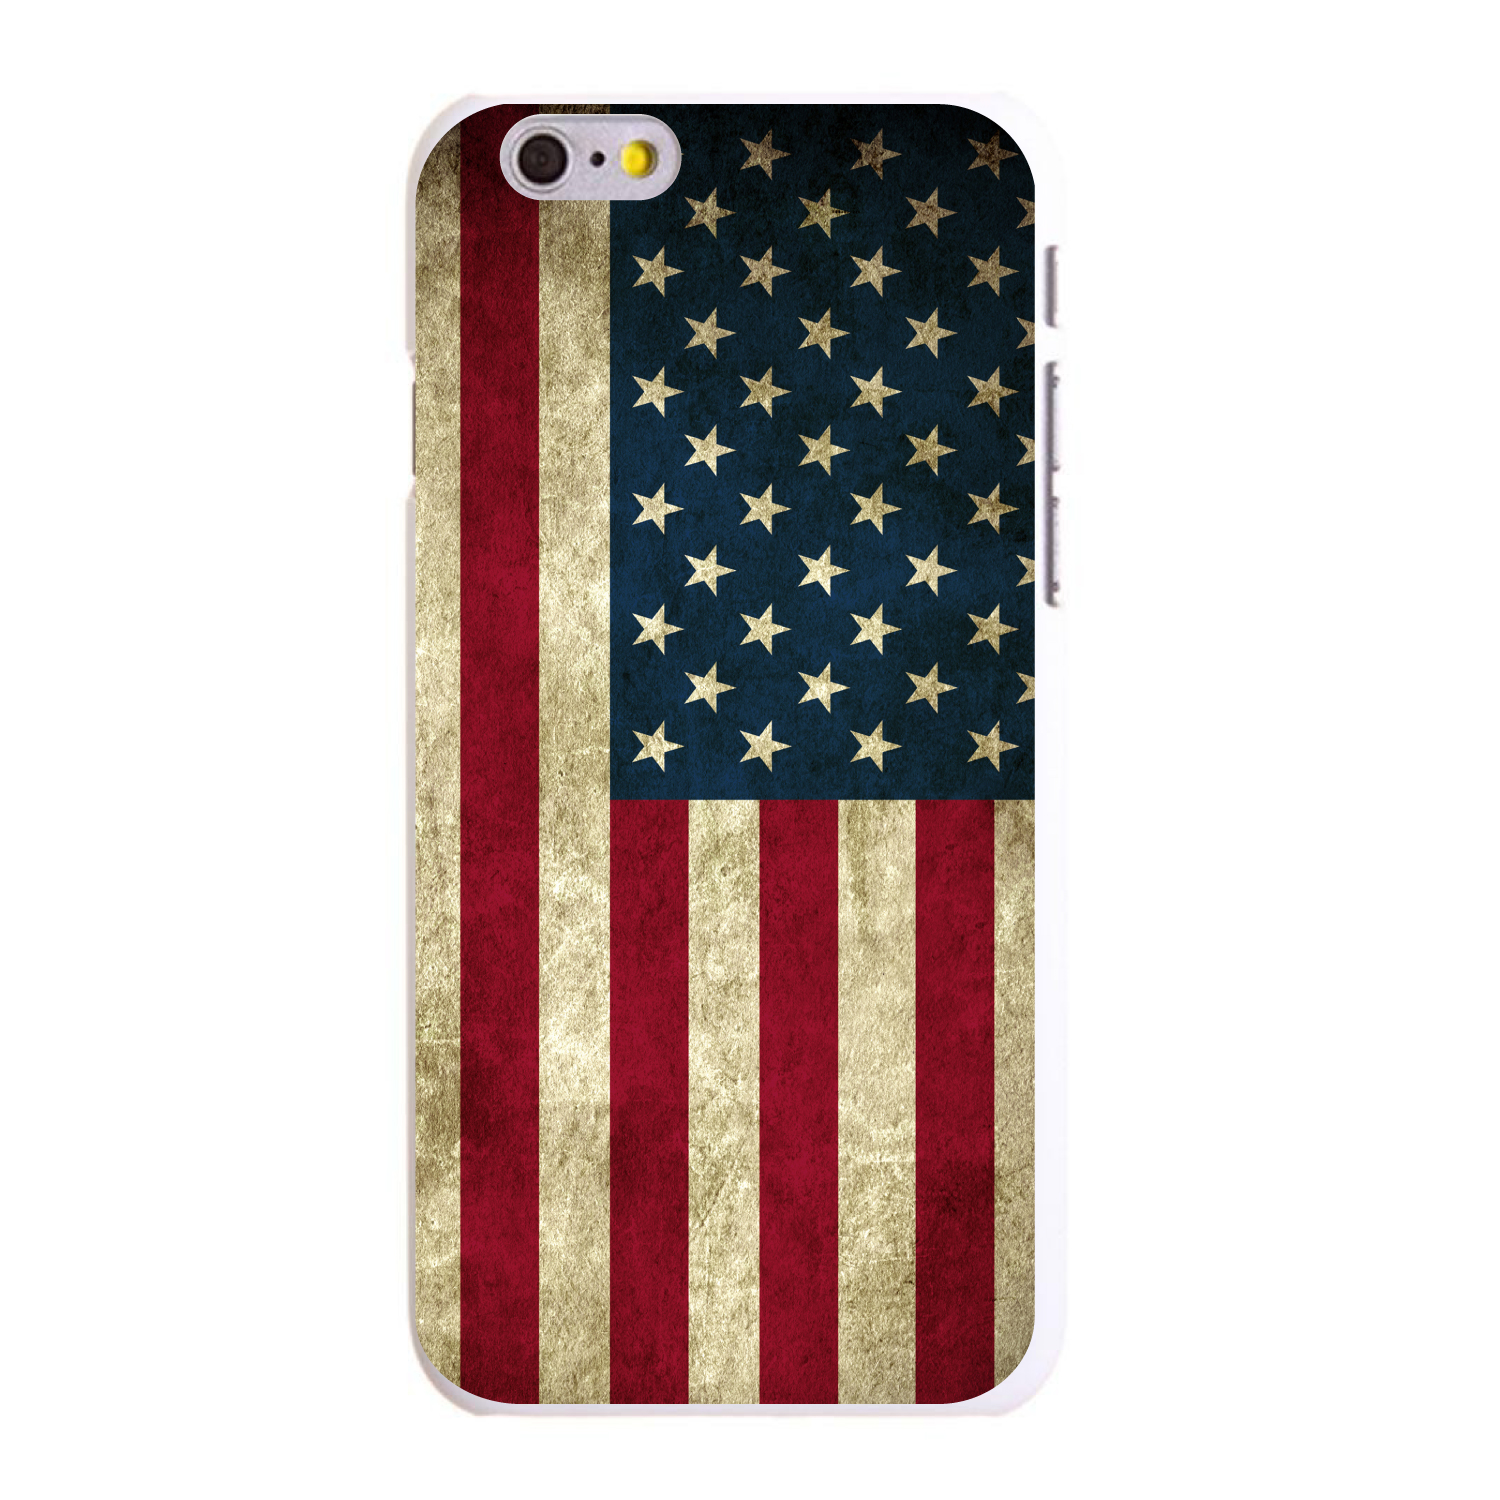 "CUSTOM White Hard Plastic Snap-On Case for Apple iPhone 6 PLUS / 6S PLUS (5.5"" Screen) - Red White Blue United States Flag Old"